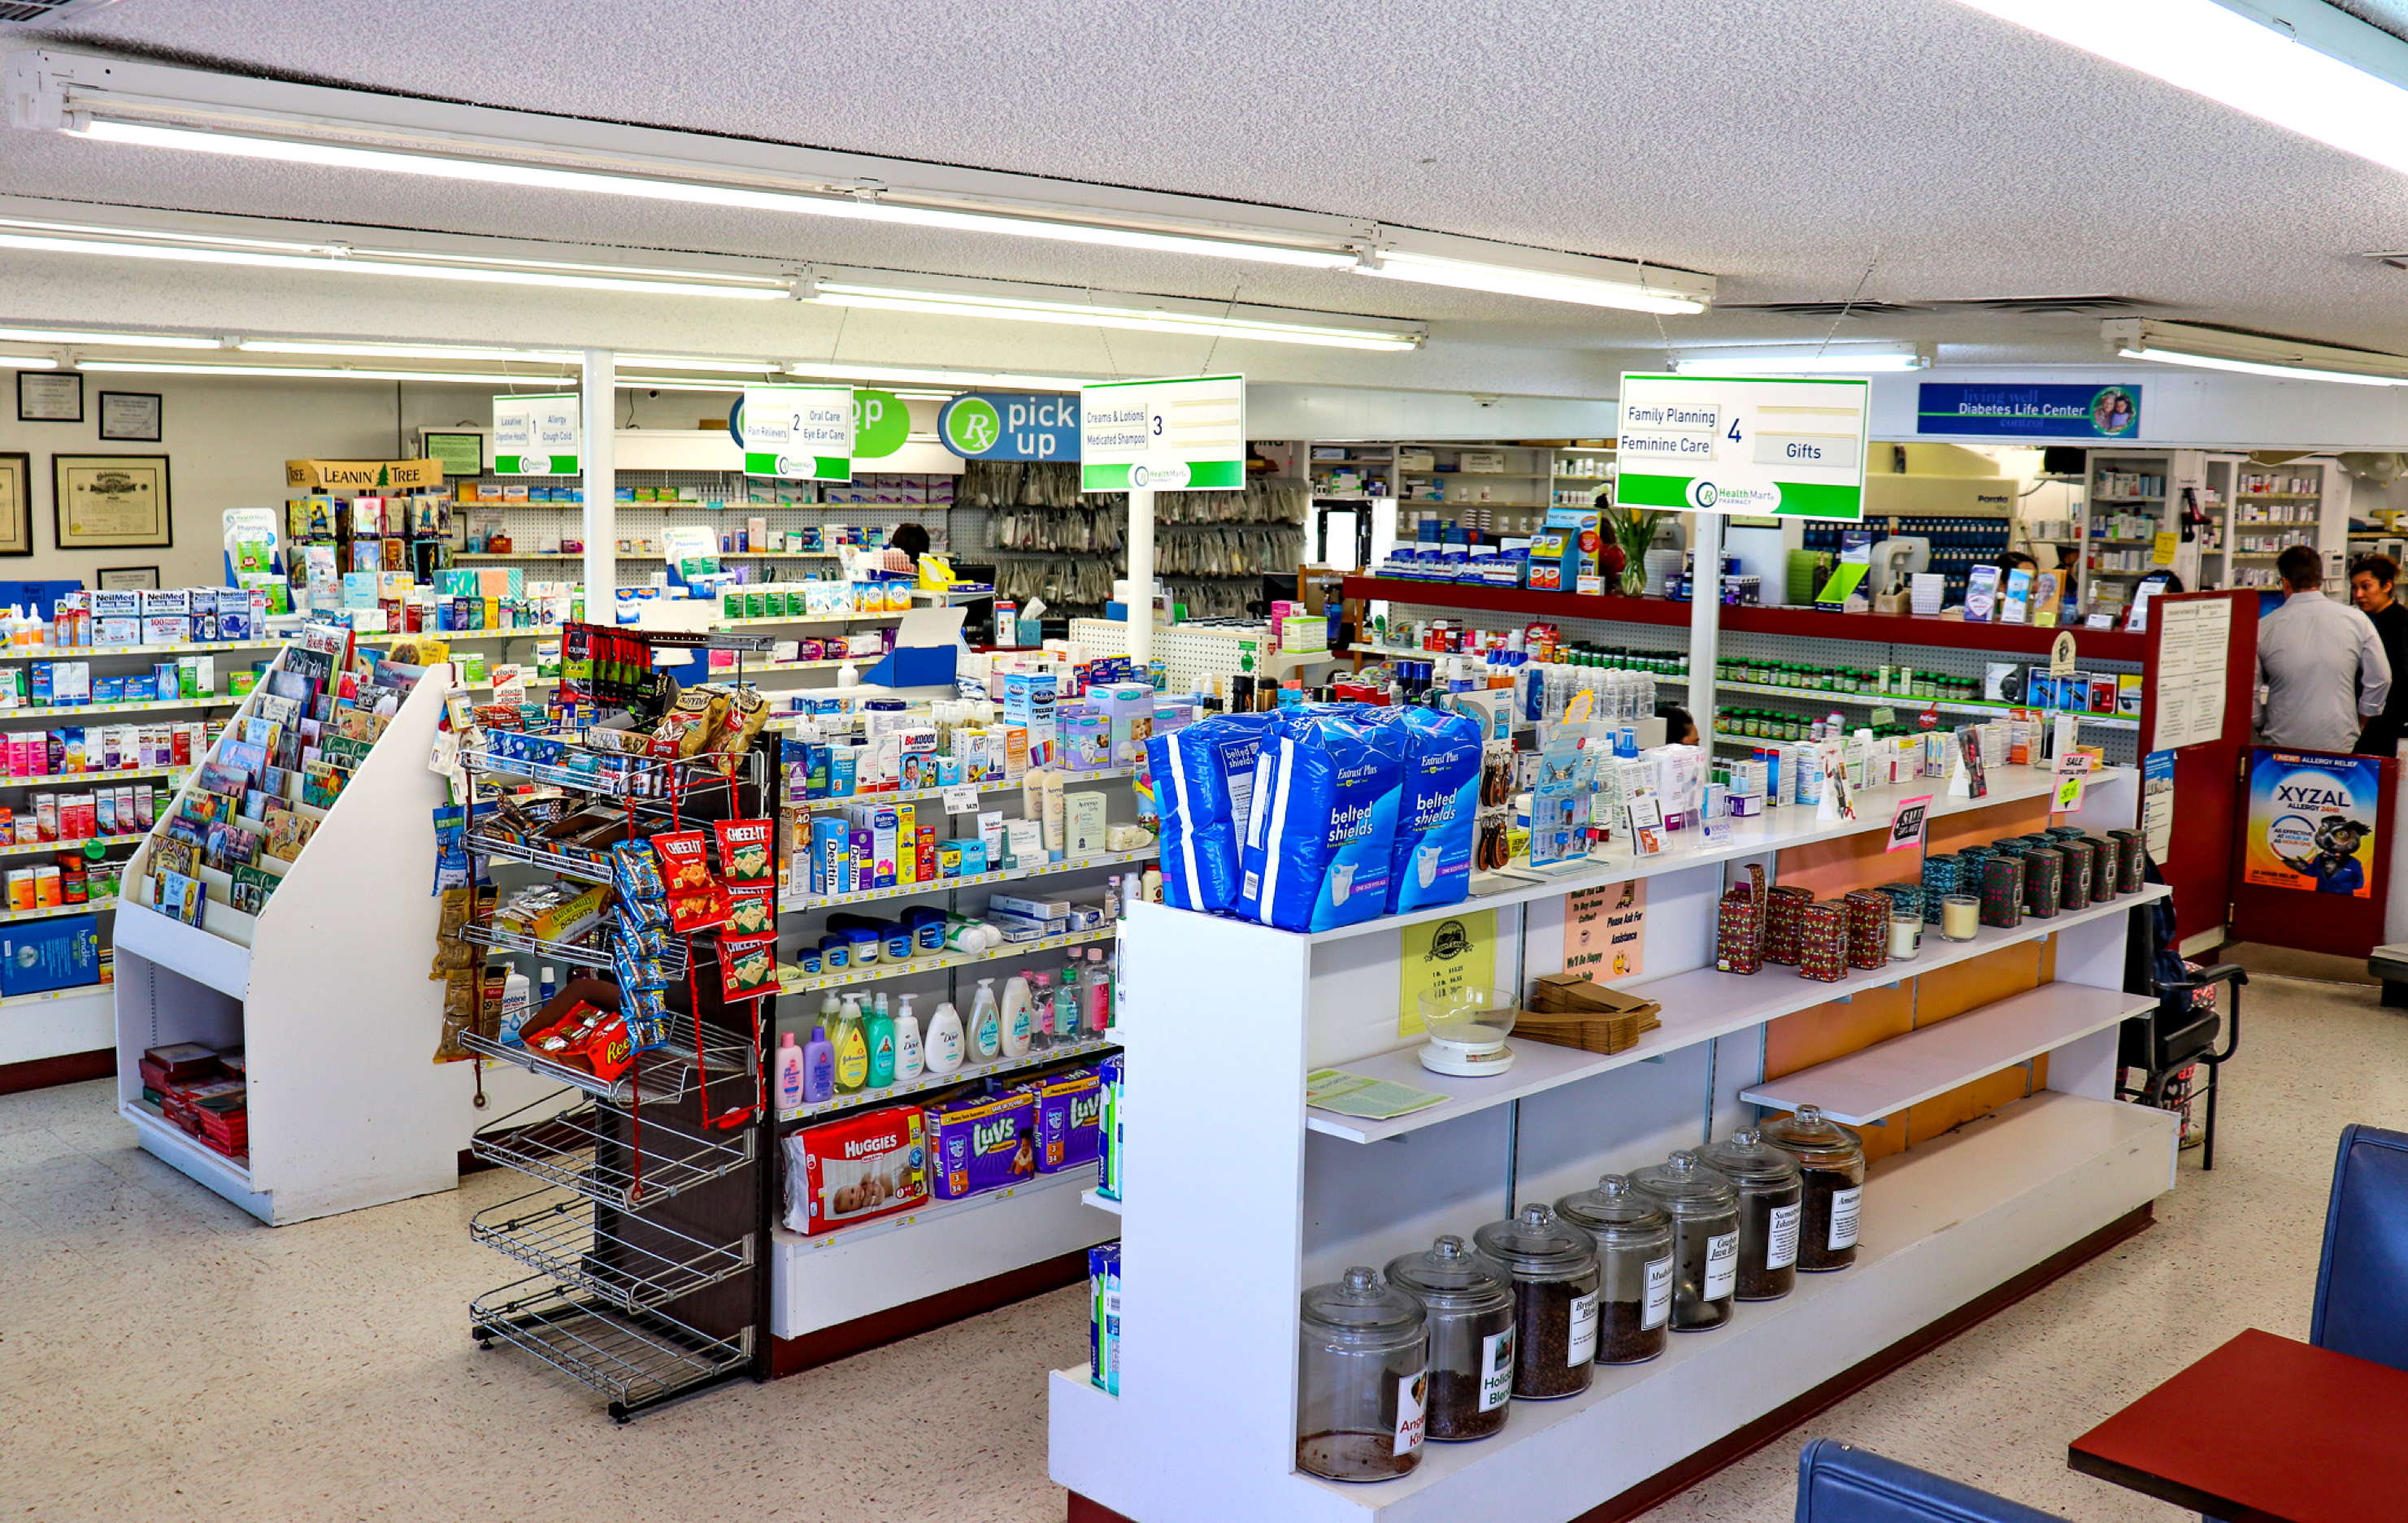 pharmacy-services-bg-image@2x.png